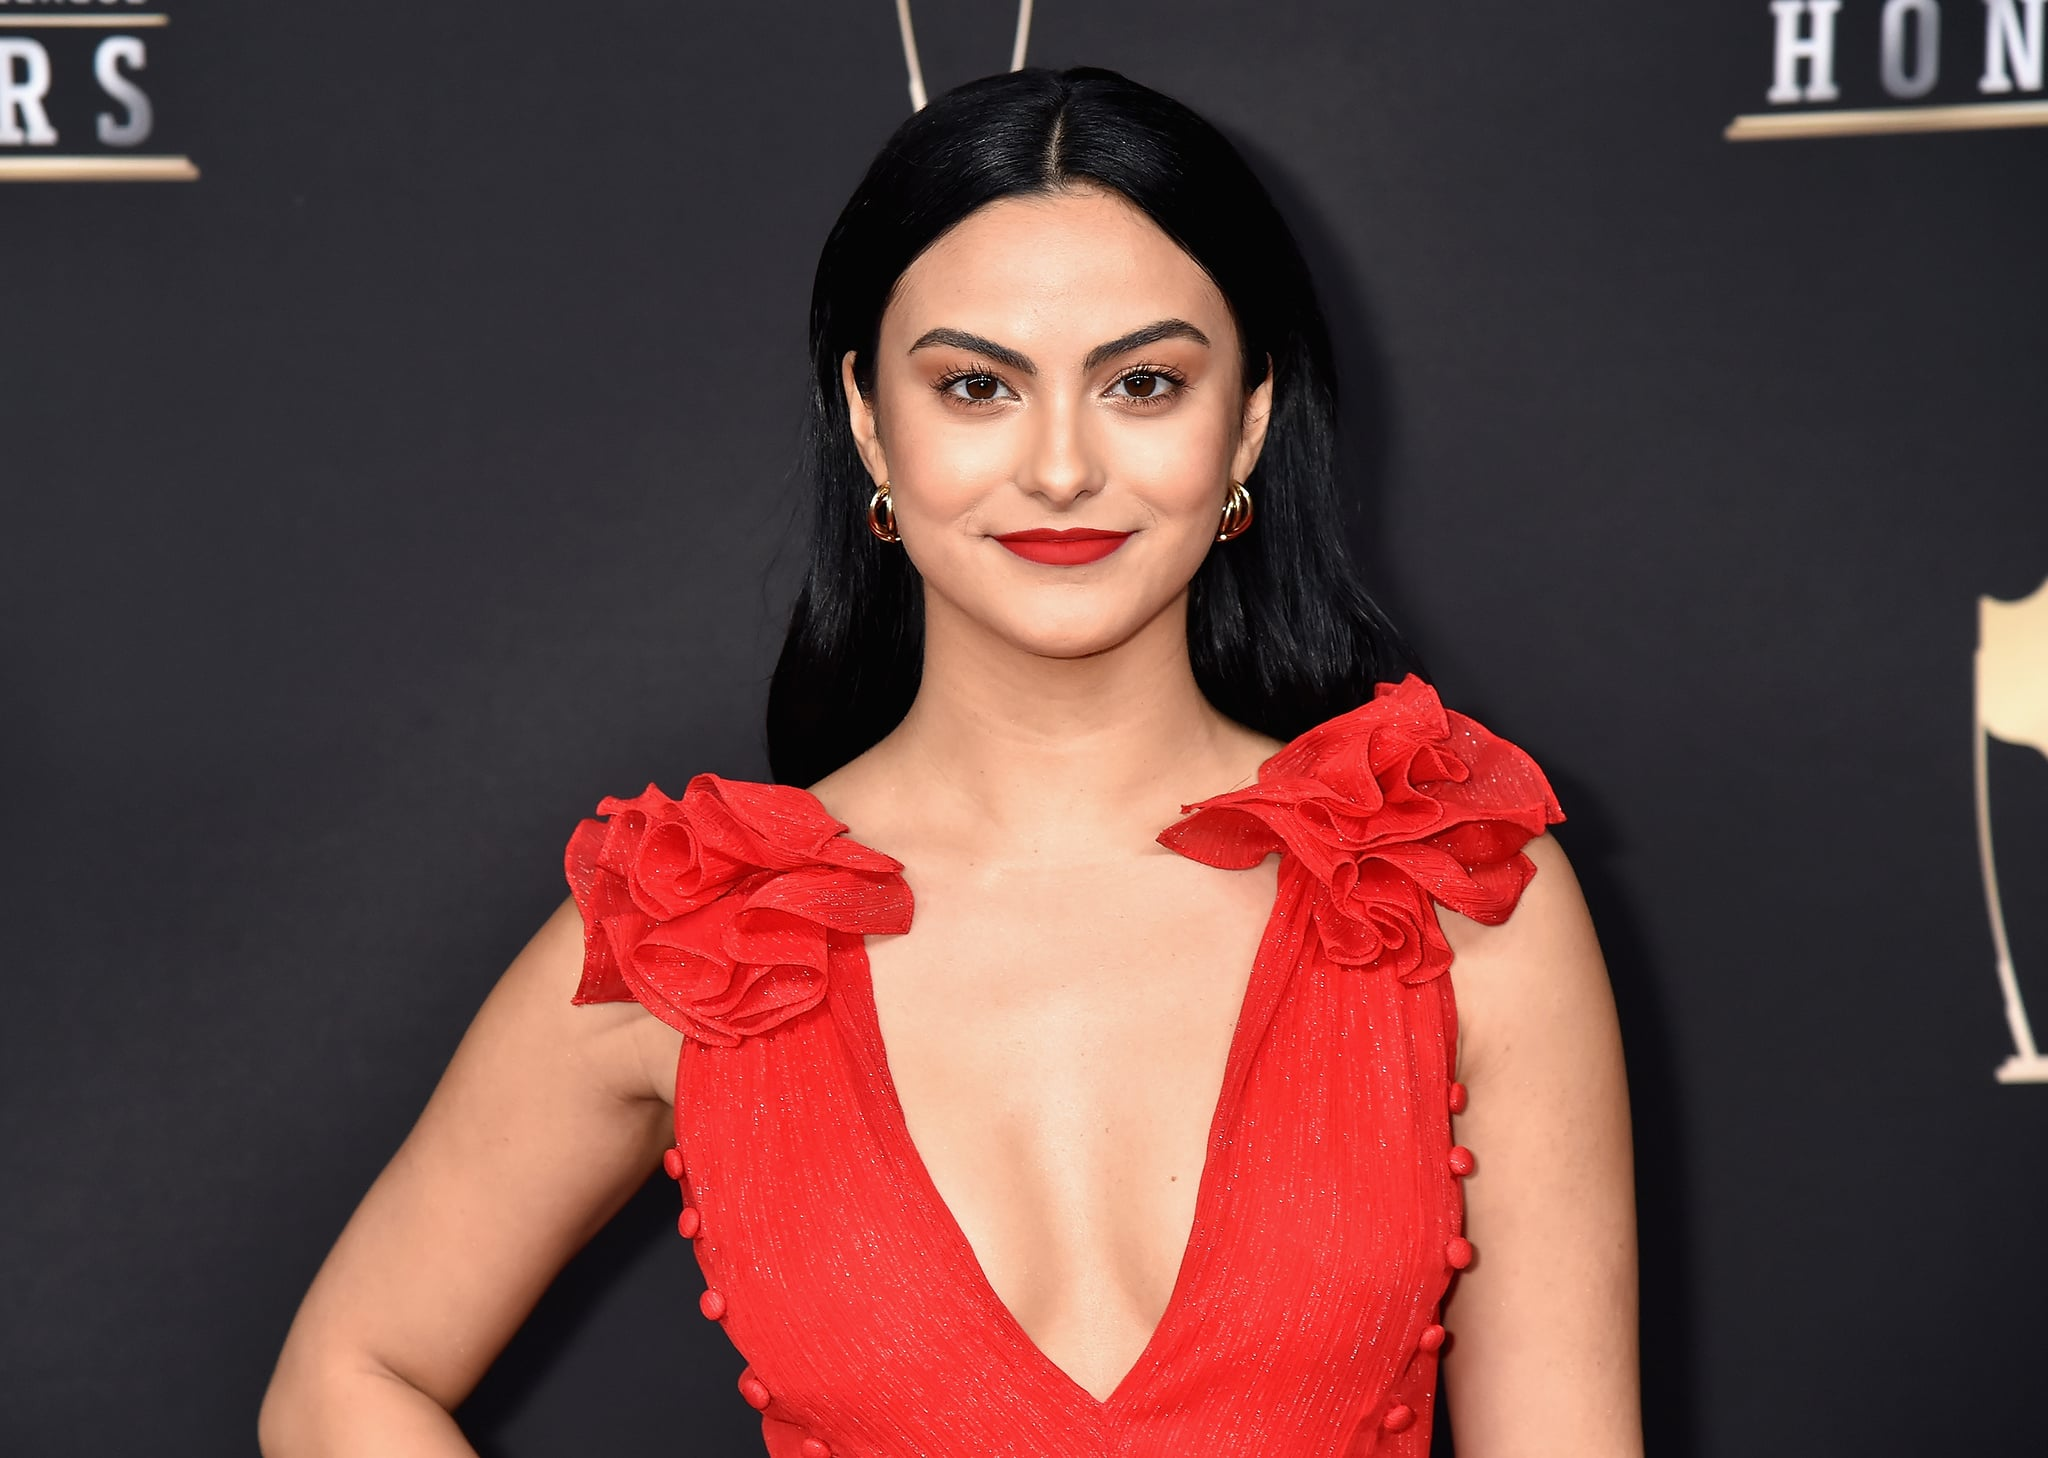 ATLANTA, GA - FEBRUARY 02:  Camila Mendes attends the 8th Annual NFL Honours at The Fox Theatre on February 2, 2019 in Atlanta, Georgia.  (Photo by Jeff Kravitz/FilmMagic)